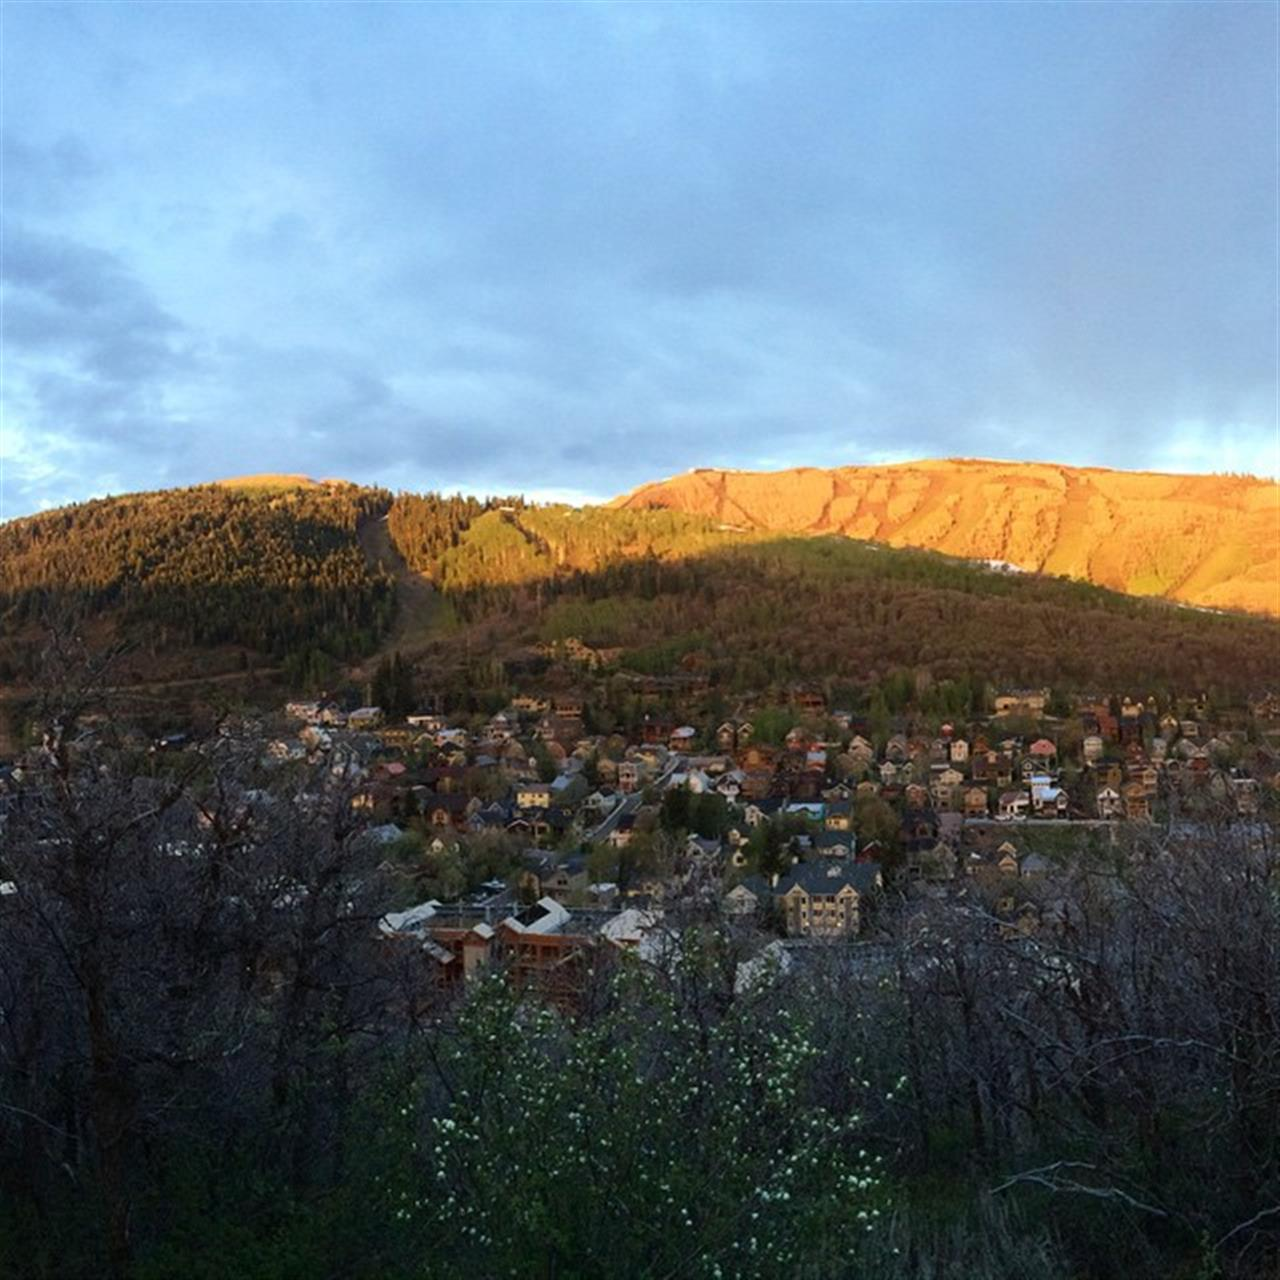 Another photo from this morning's sunrise! #leadingrelocal #oldtown #lostprospector #parkcity #utahisrad #christieshomes